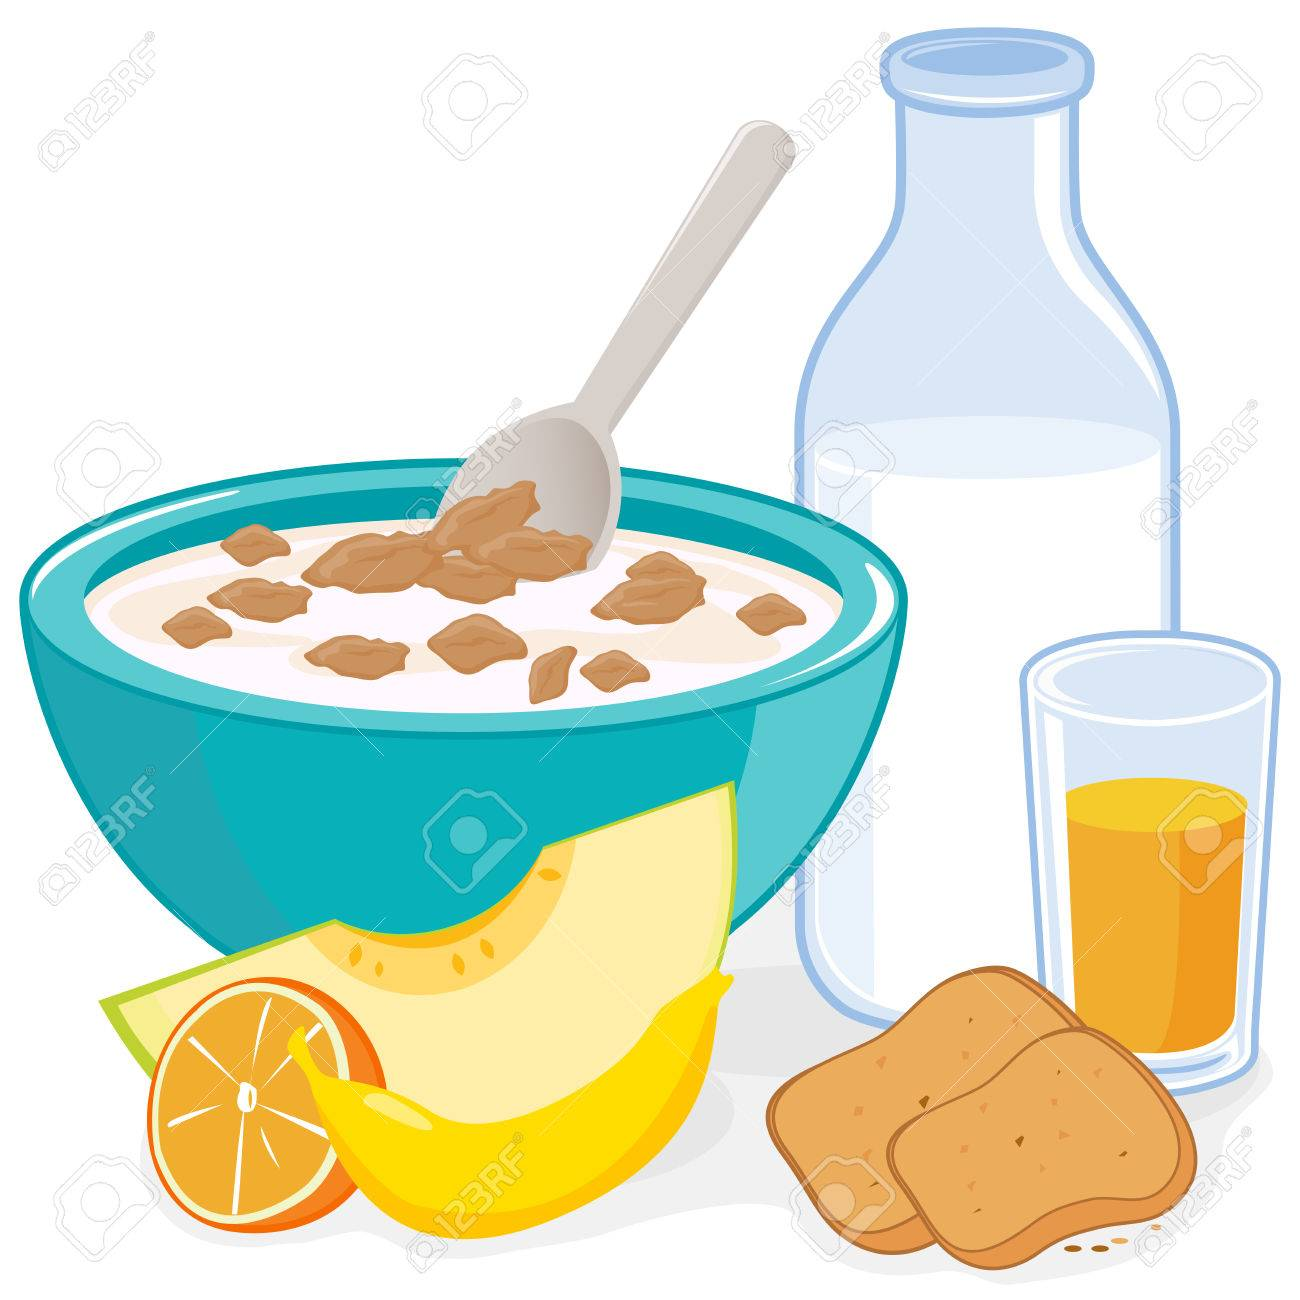 breakfast a bowl of cereal bottle of milk juice toast and rh 123rf com bowl of cereal clipart free